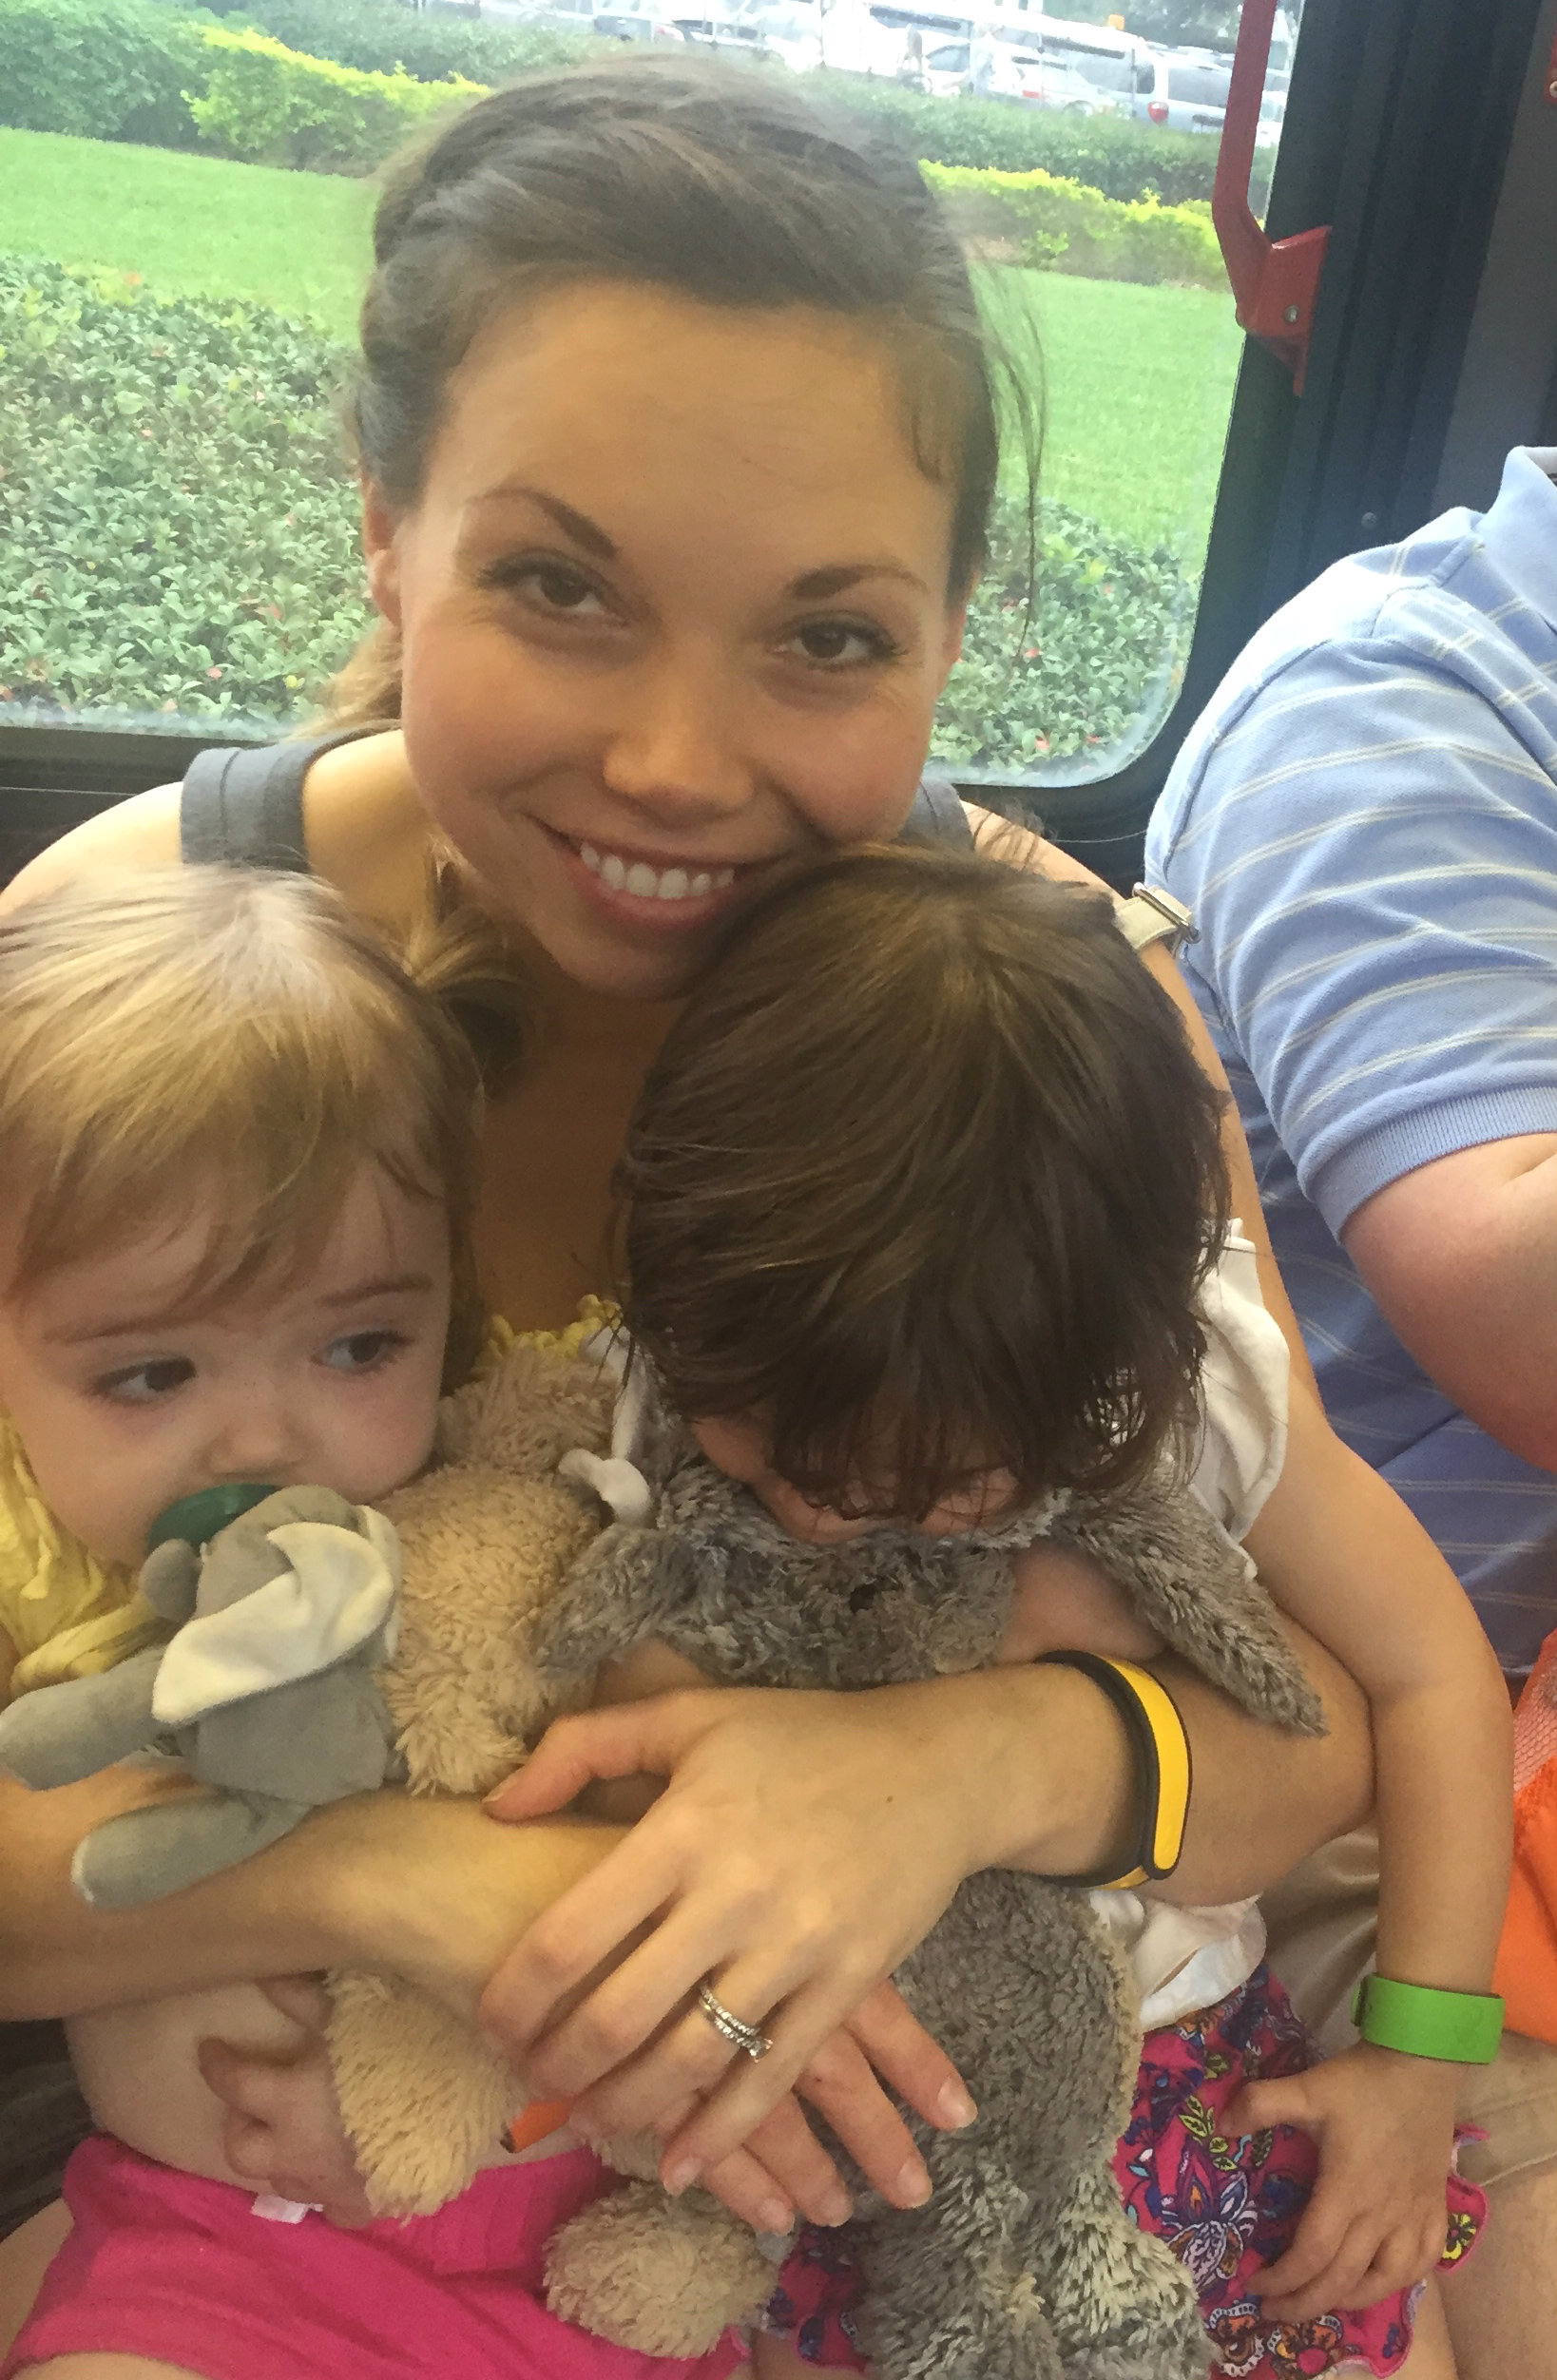 On a Disney bus with twins